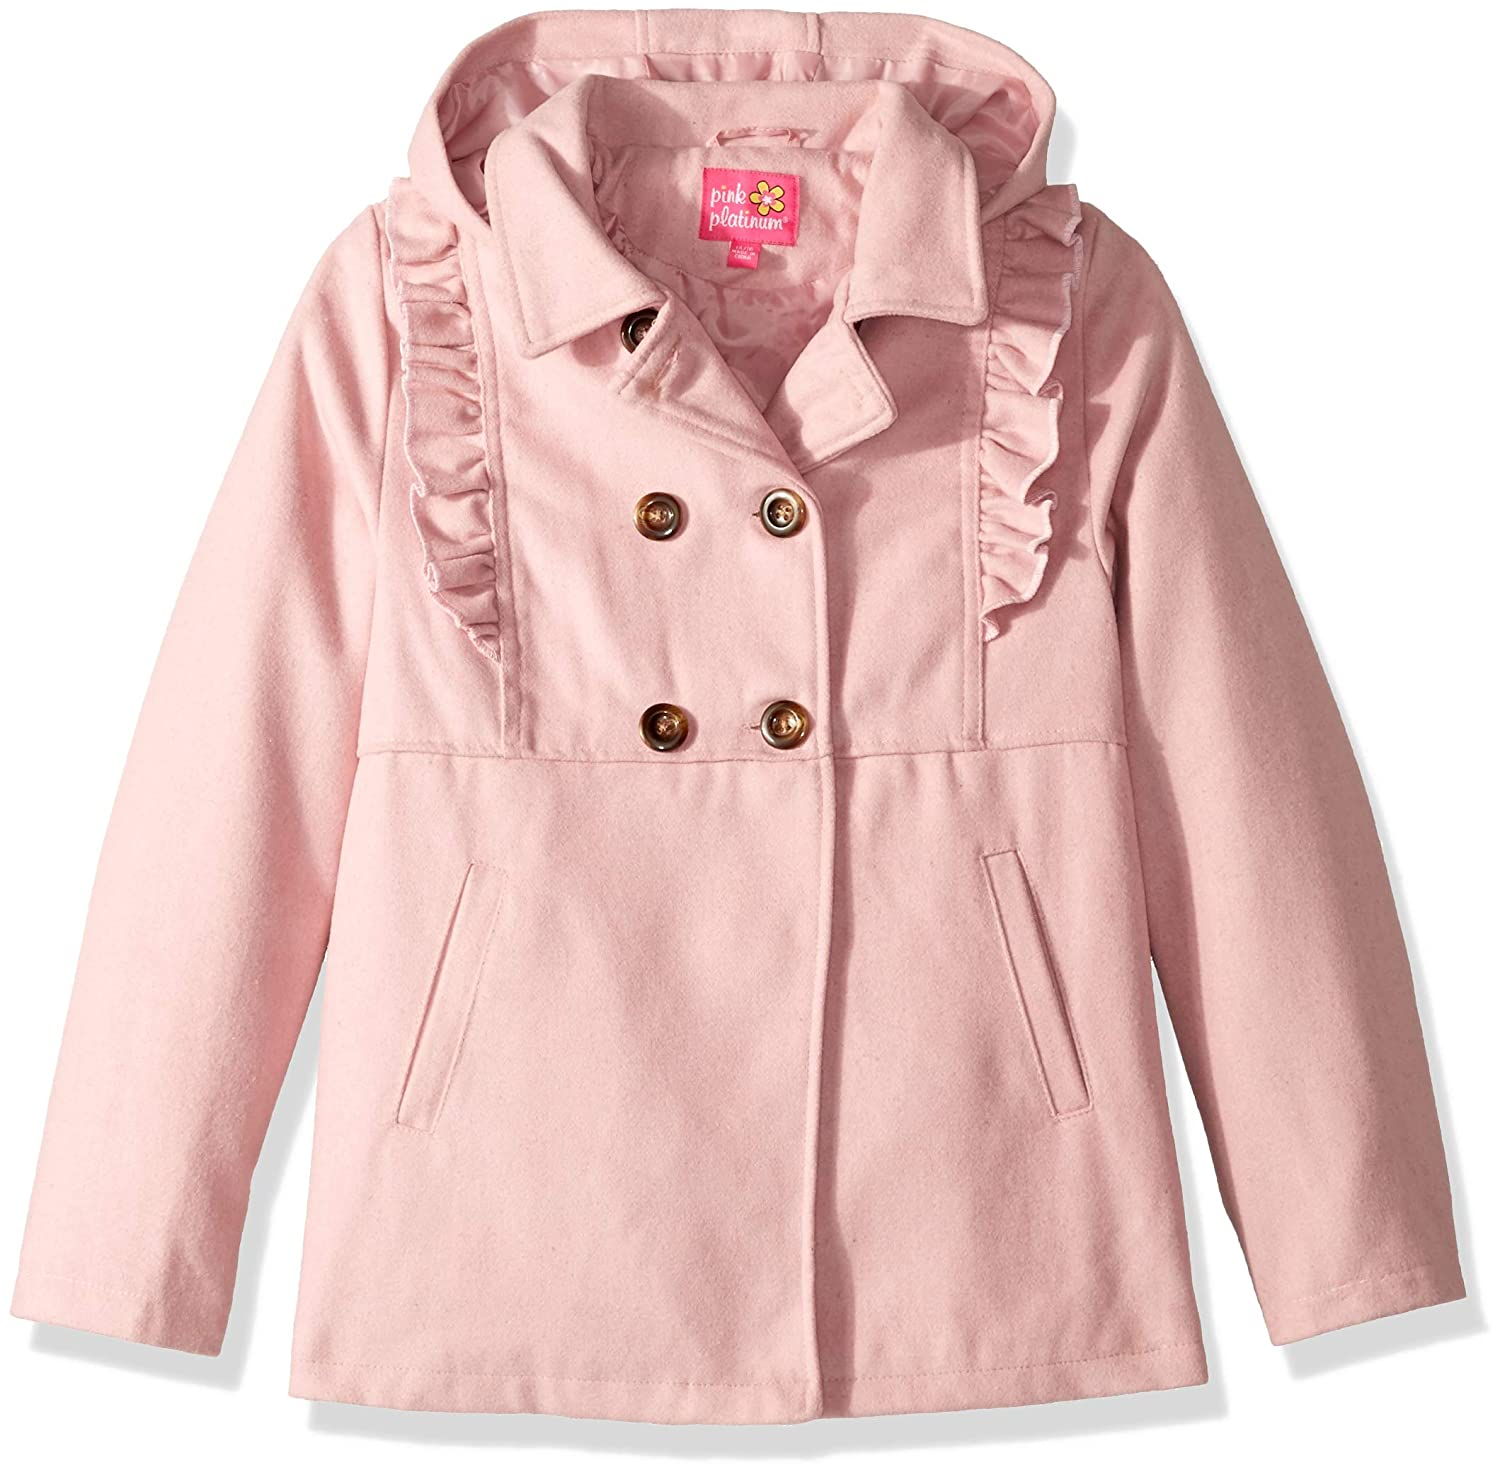 776e141b95e4 Top 10 wholesale Pink Wool Jacket - Chinabrands.com